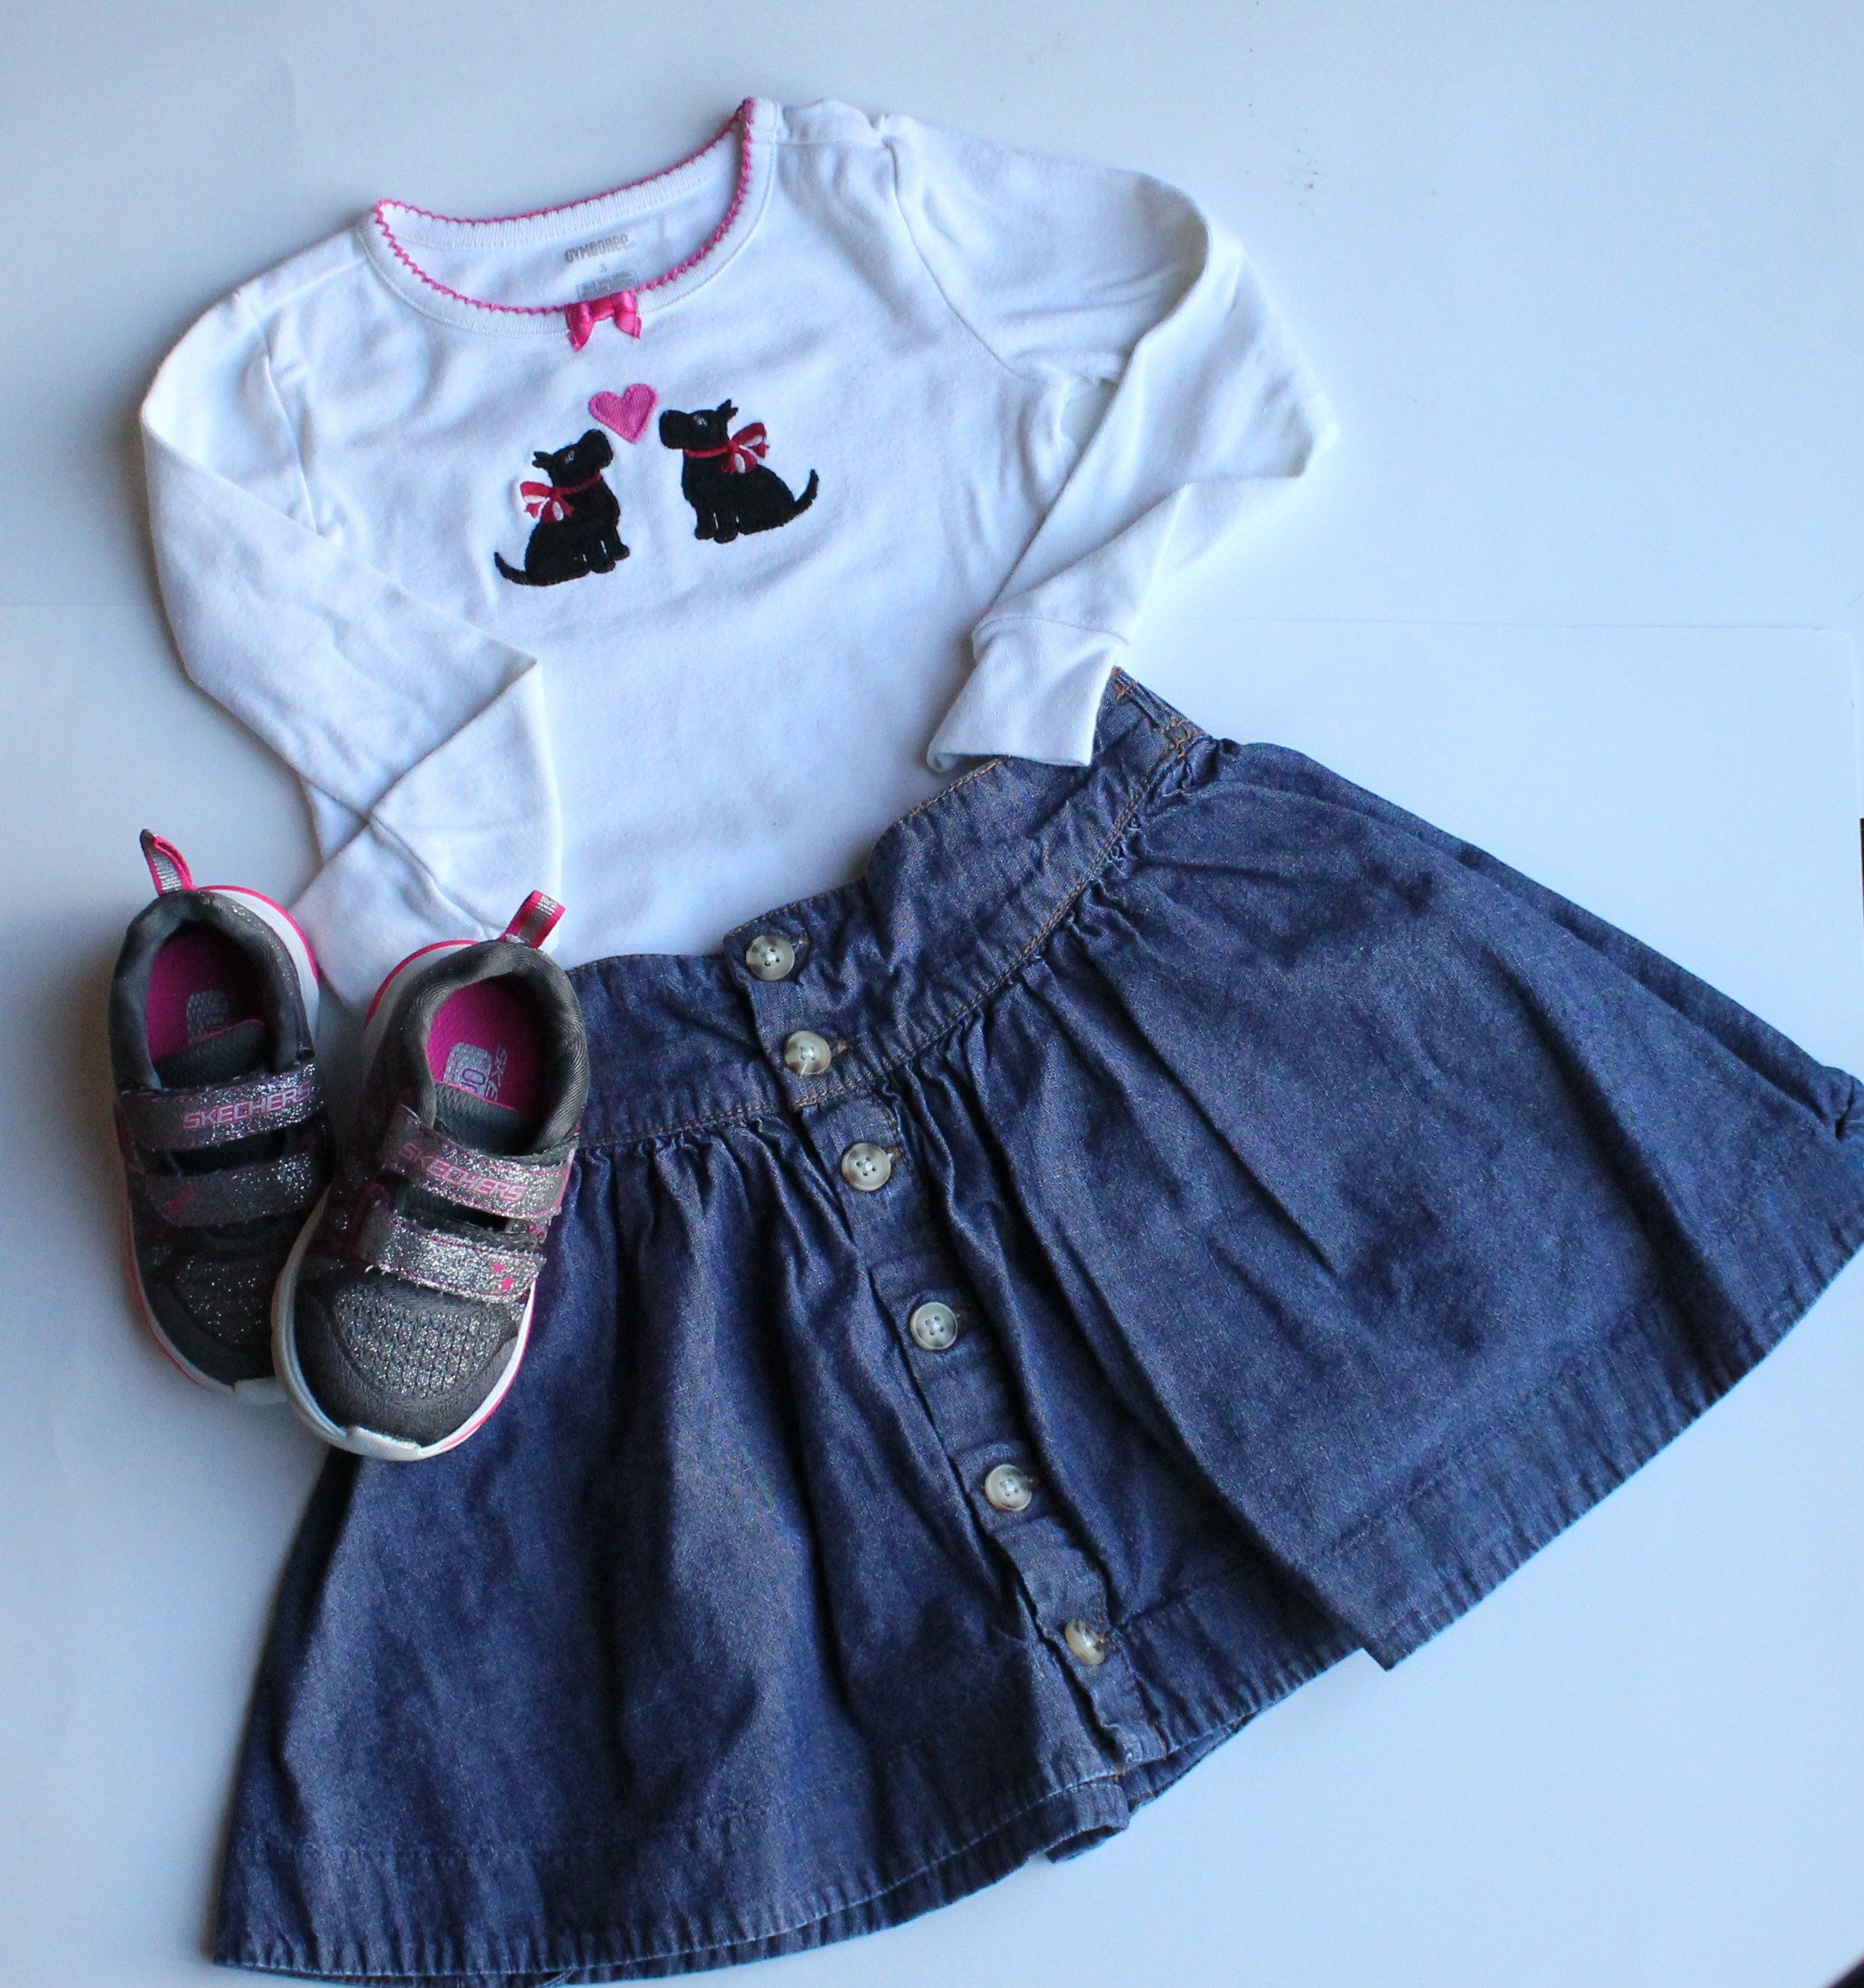 Skirt by Osh Kosh Skechers Shoes and Top by Gymboree All items for